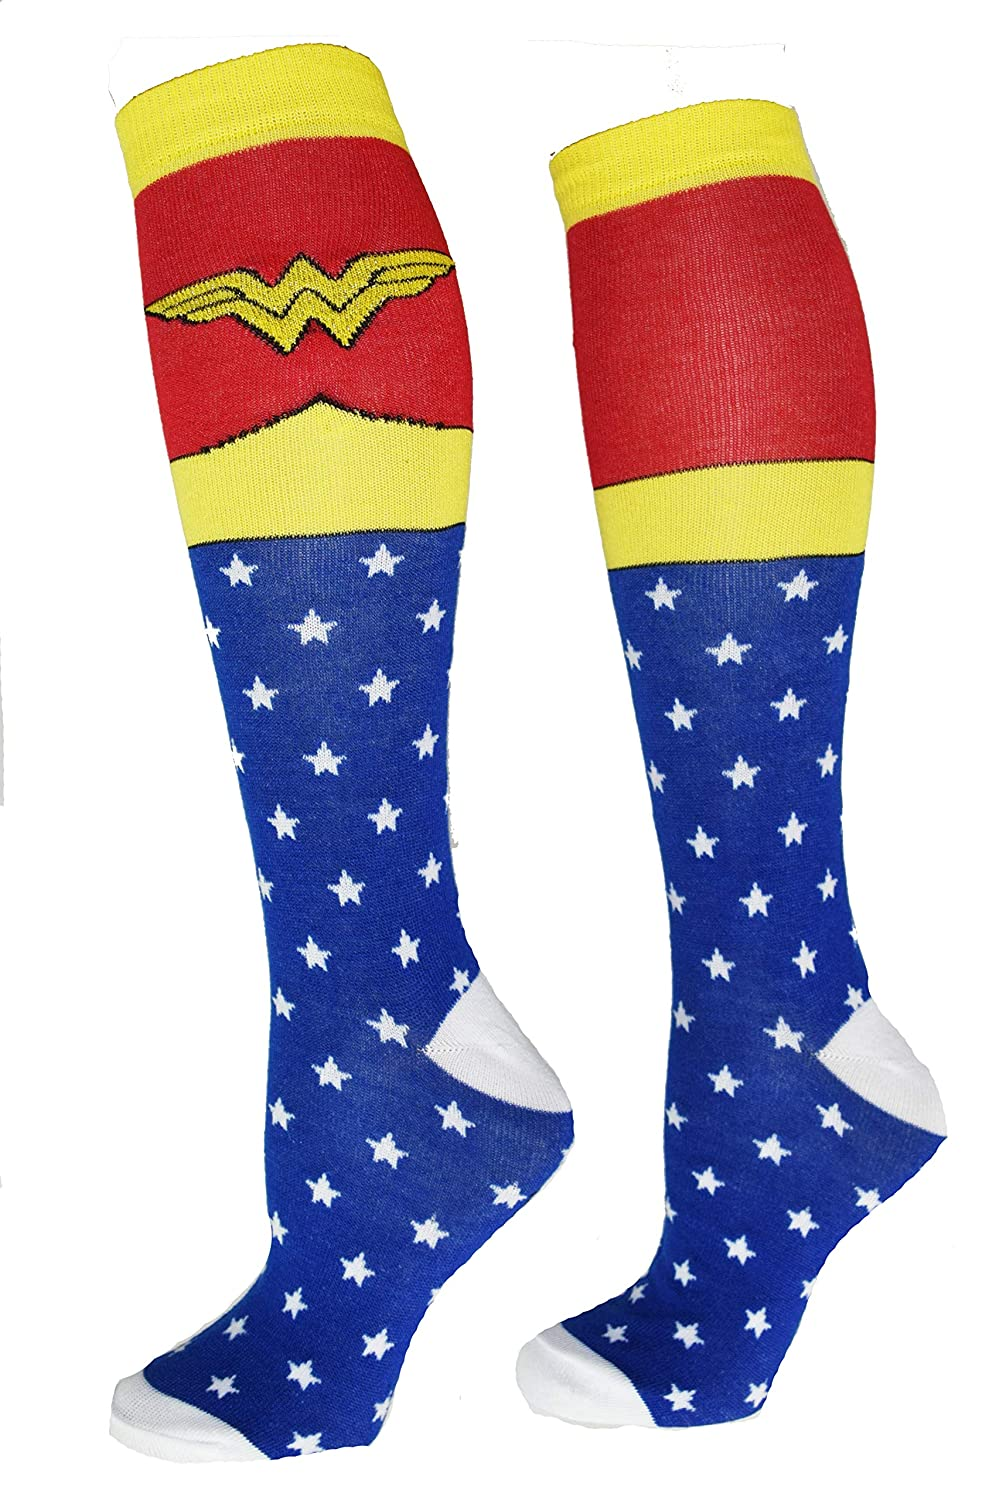 Wonder Woman Superhero Socks, Shoe Size: 4-10 Shoe Size: 4-10 (Knee High Blue)